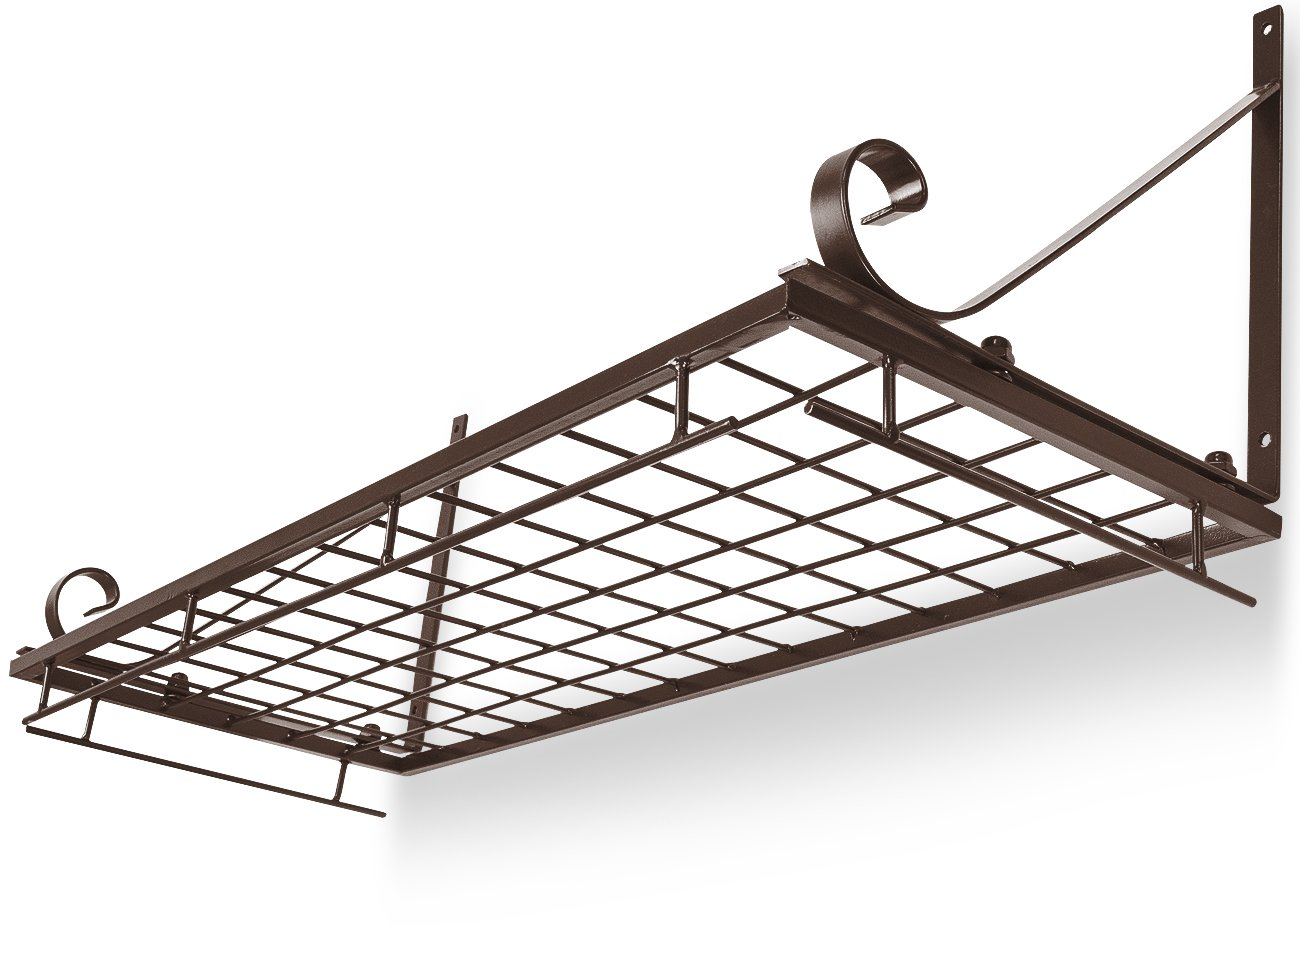 Sorbus Pots and Pan Rack — Decorative Wall Mounted Storage Hanging Rack — Multipurpose Wrought-Iron shelf Organizer for Kitchen Cookware, Utensils, Pans, Books, Bathroom (Wall Rack - Bronze) by Sorbus (Image #6)